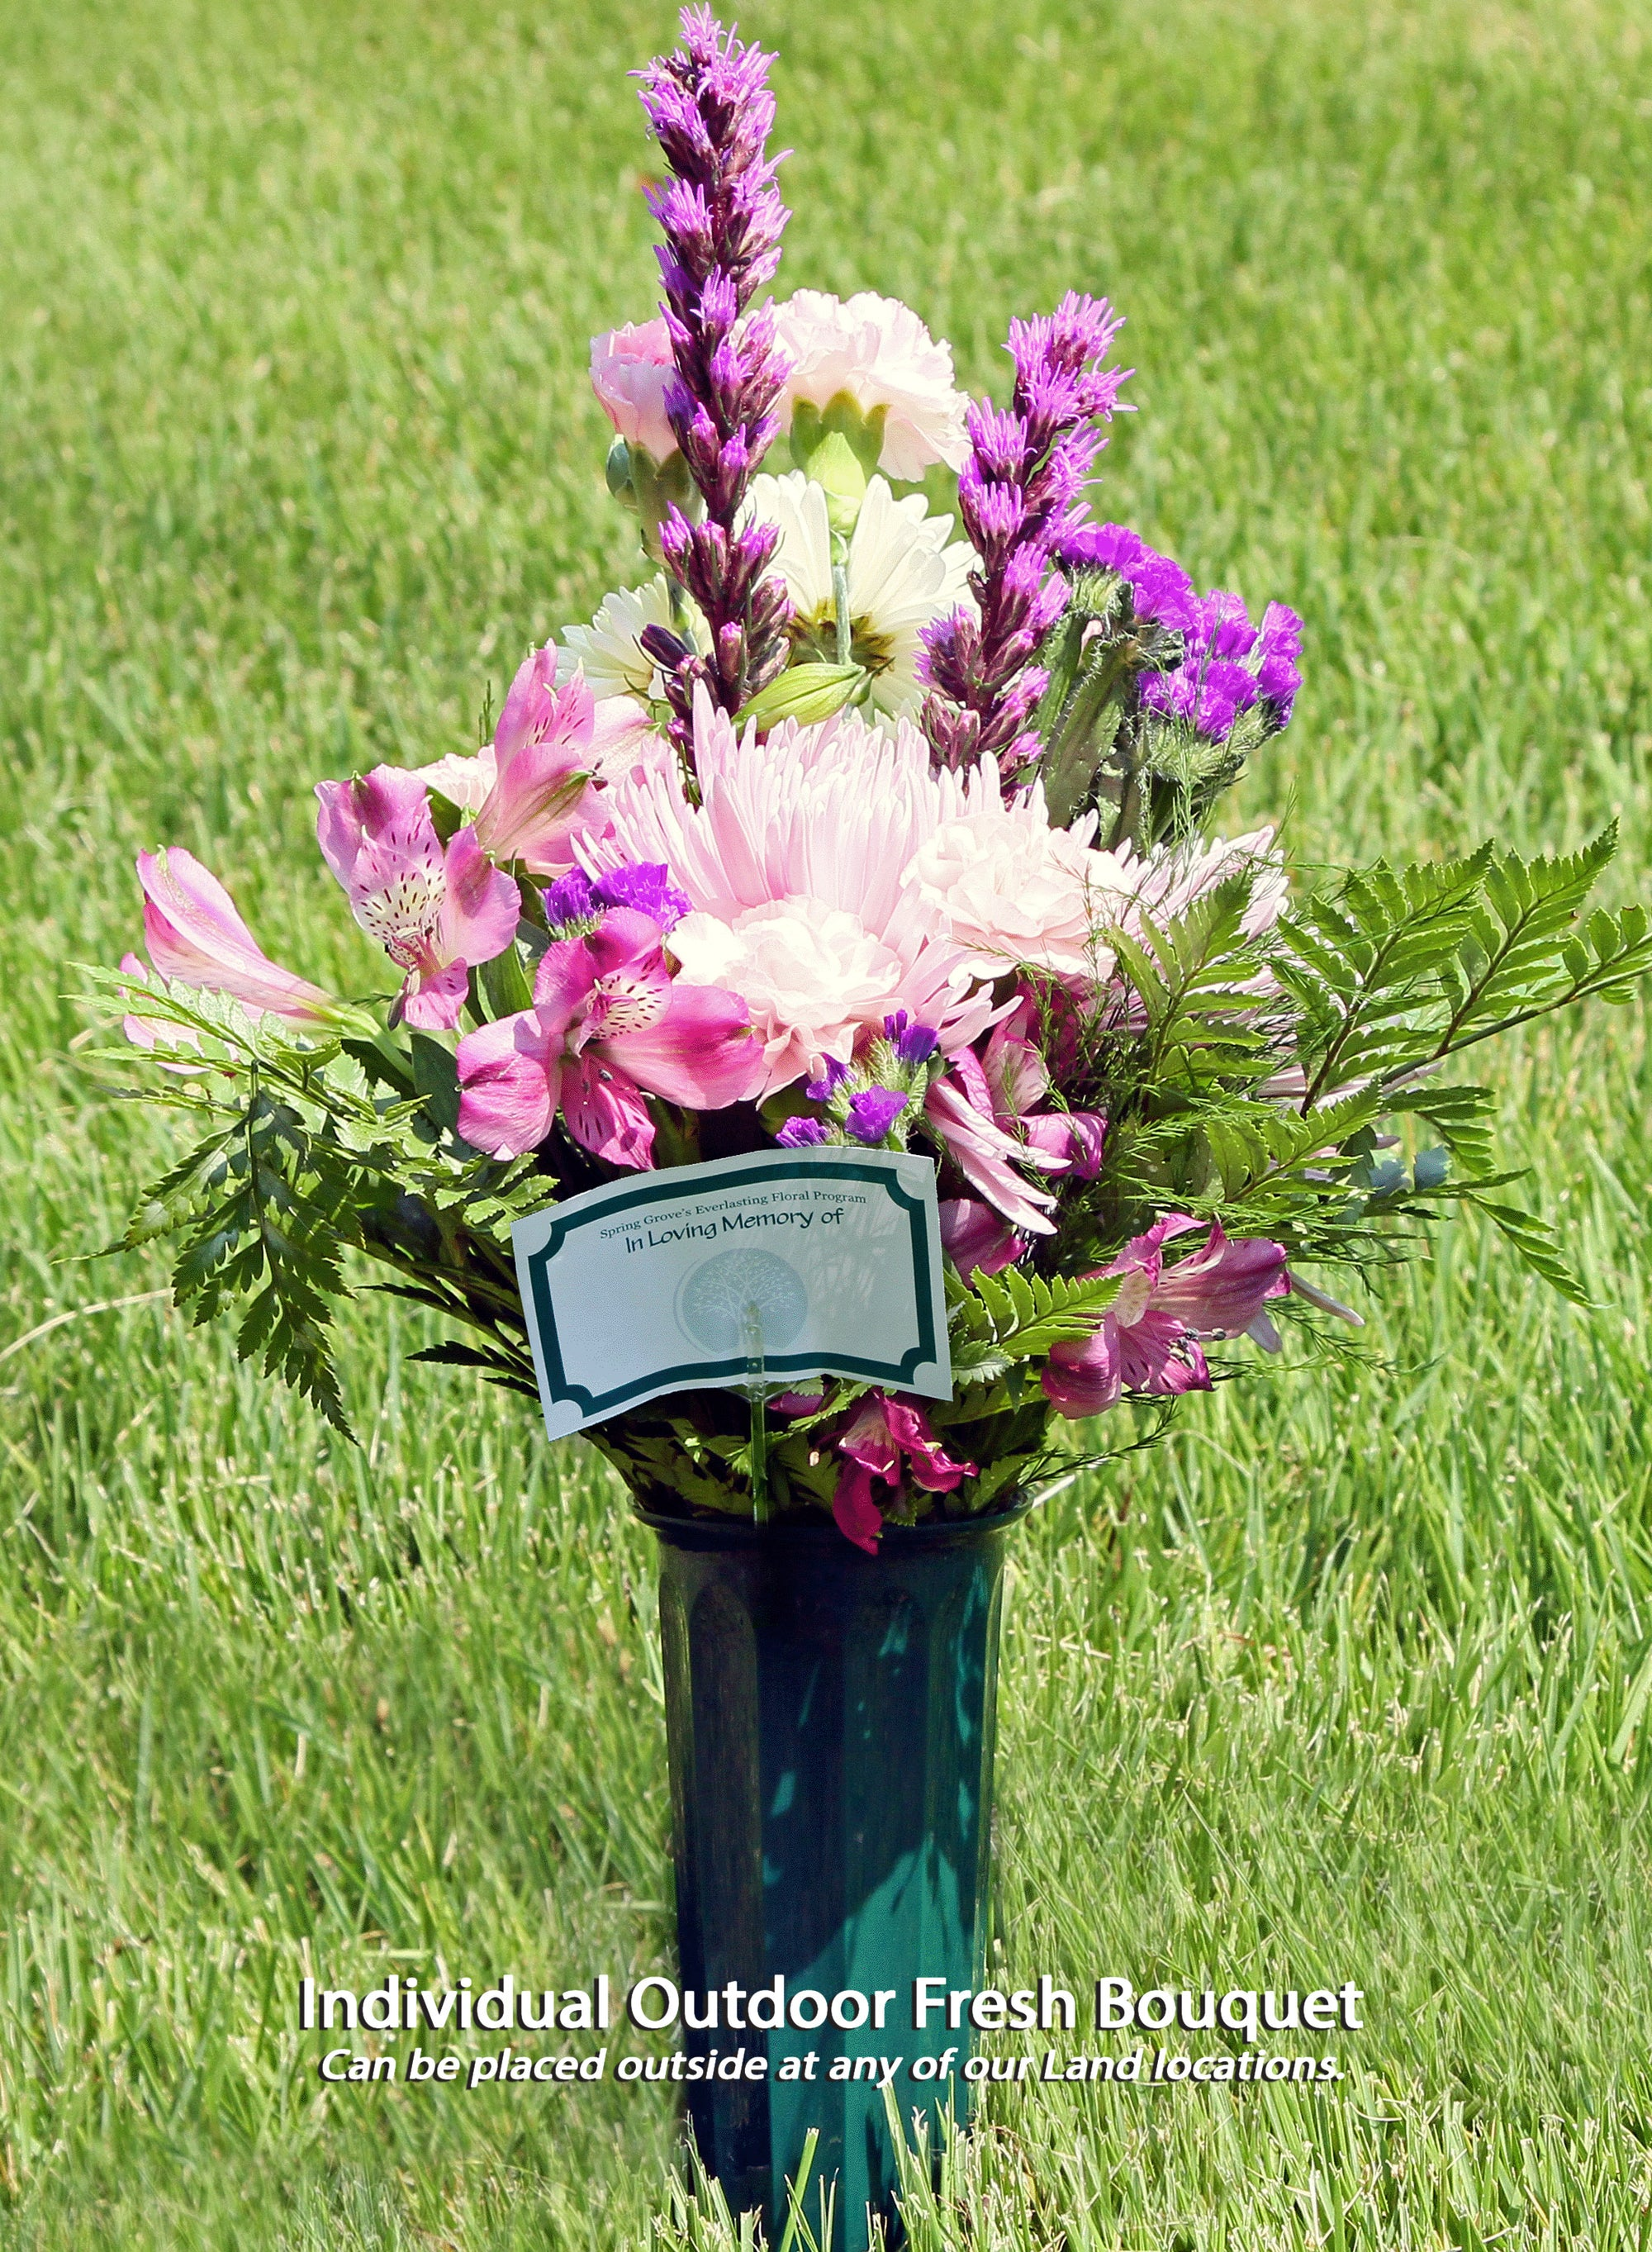 Outdoor Individual Bouquet